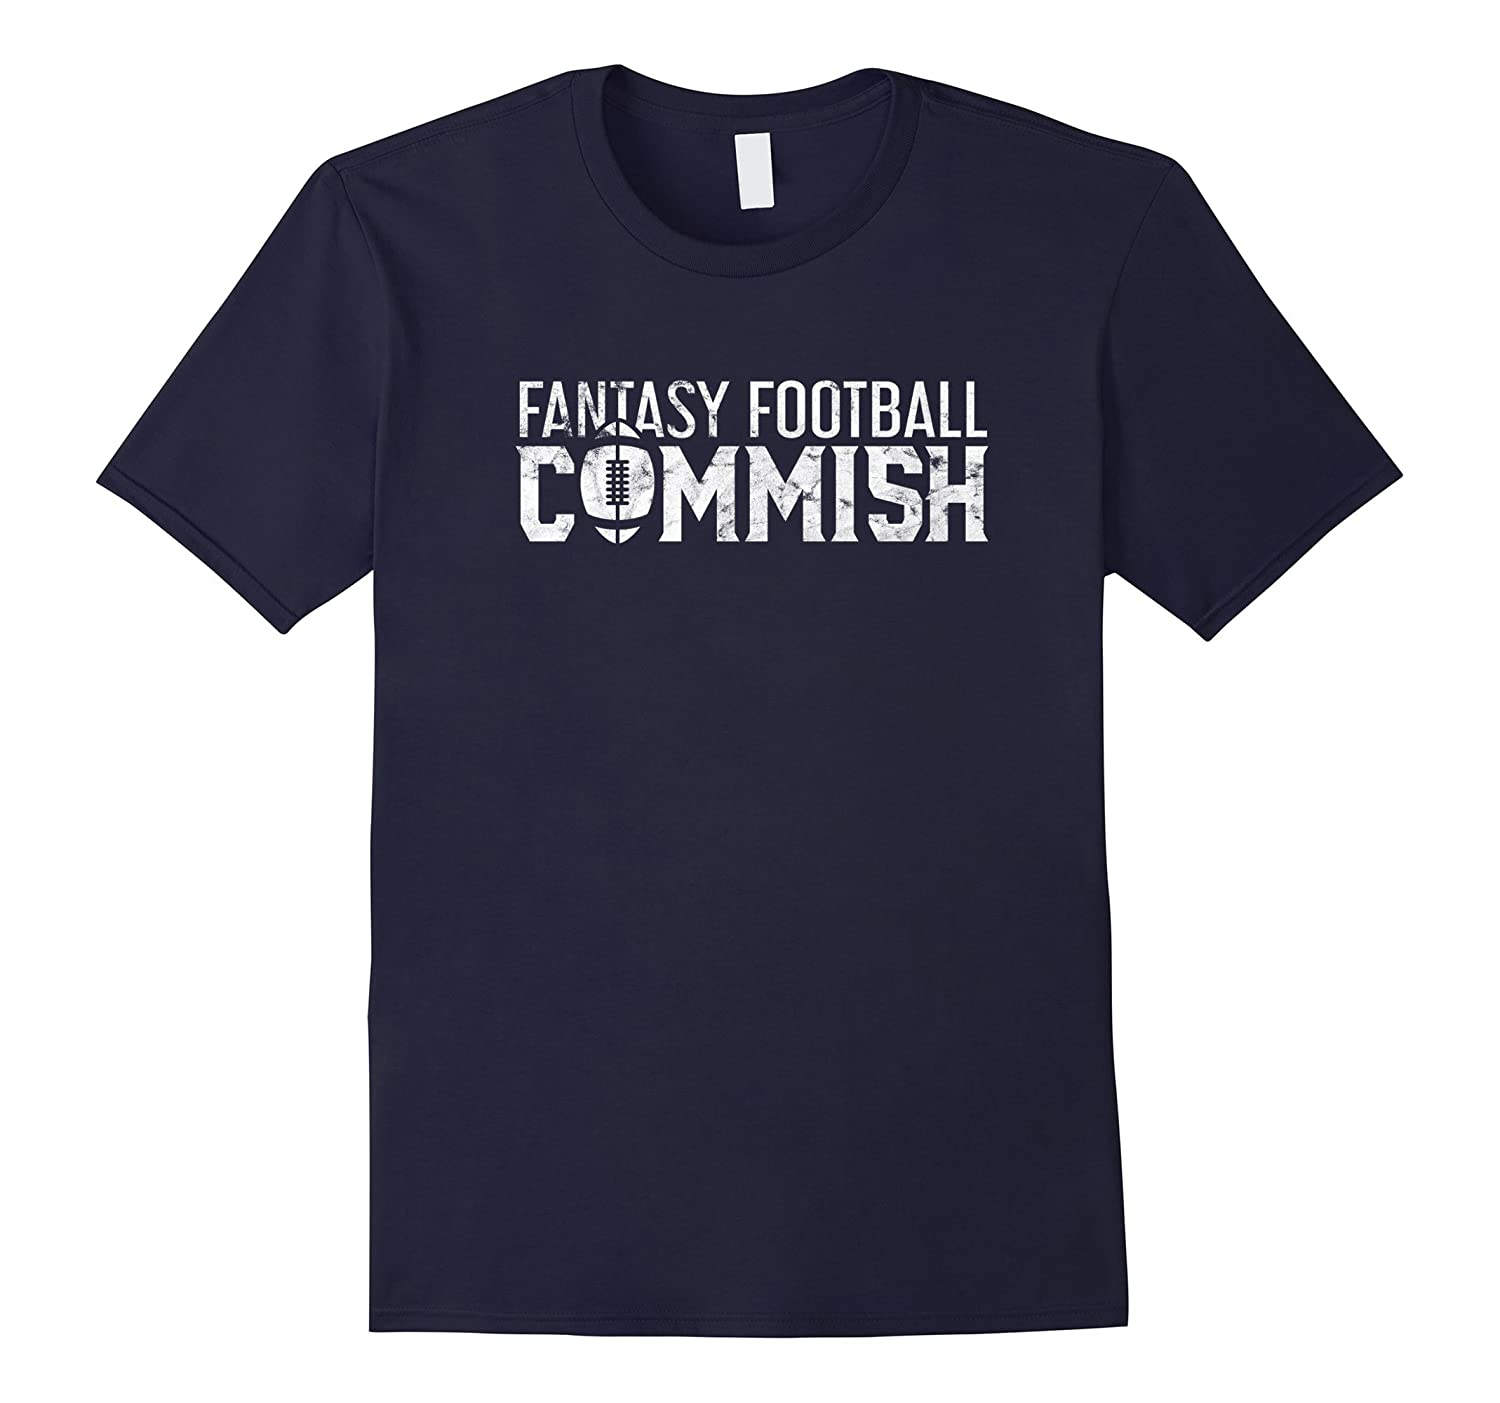 2017 Fantasy Football Commish T-Shirt for Men and Women-Art